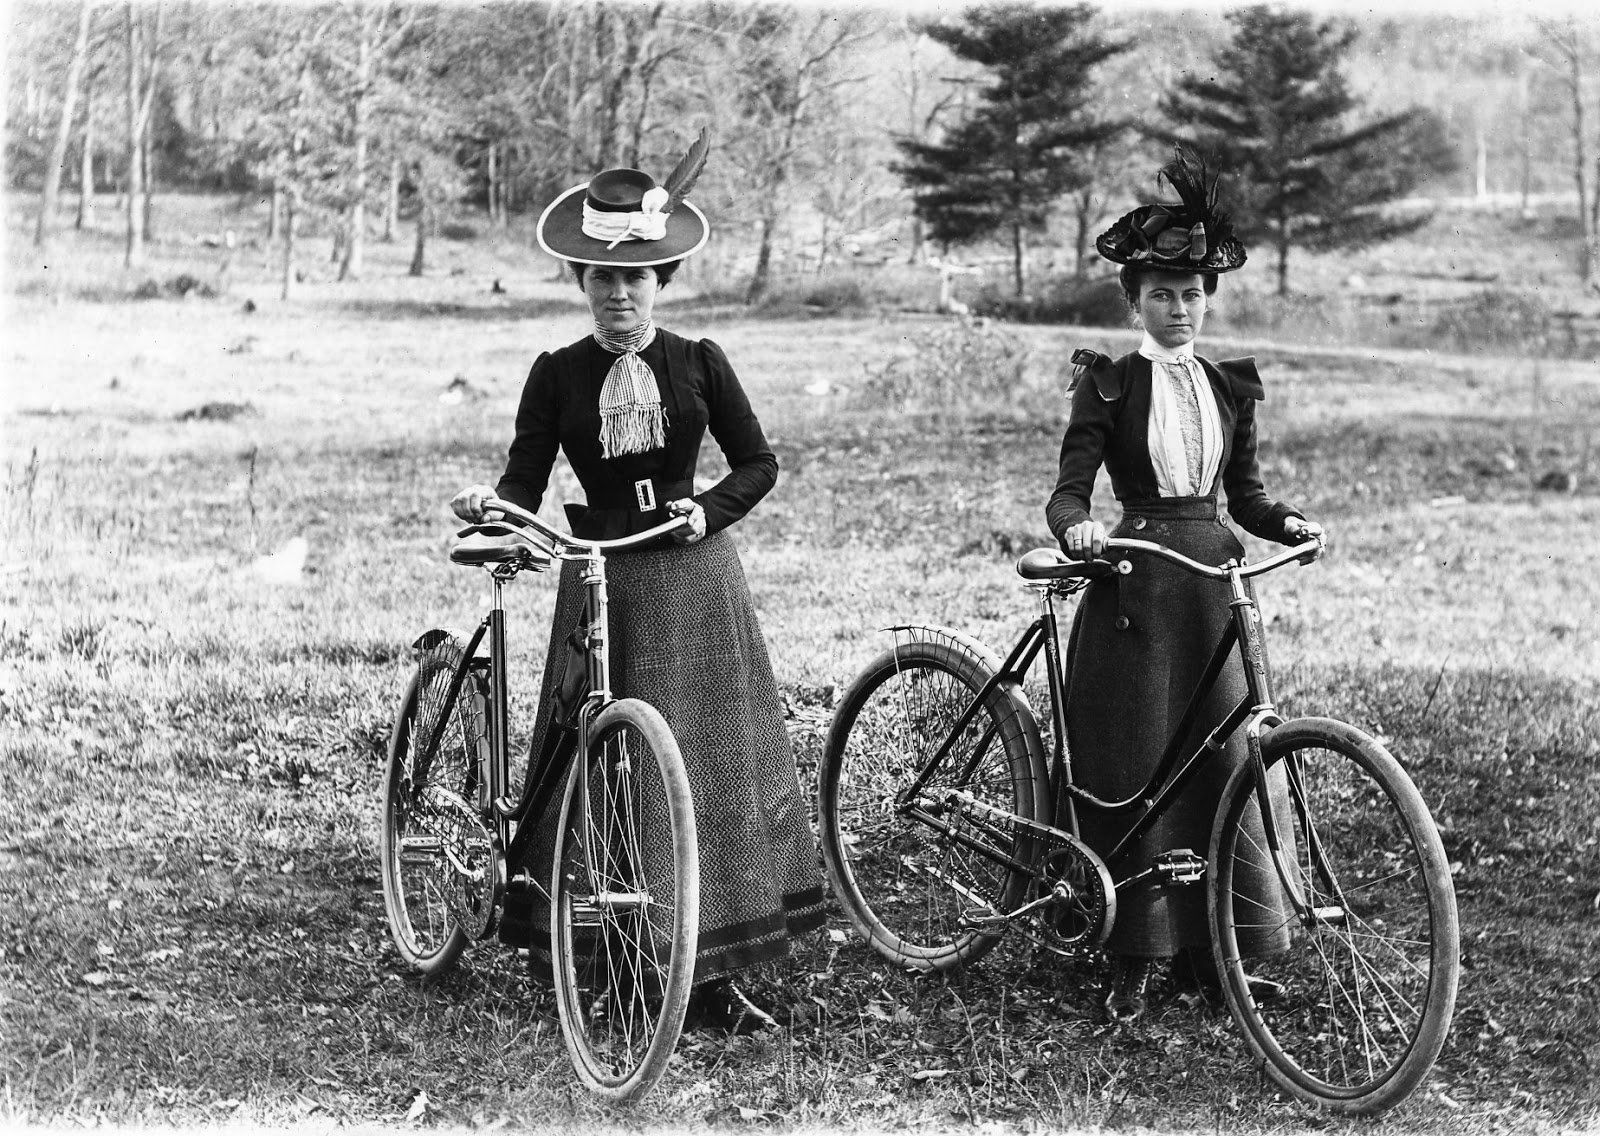 Image Courtesy of cyclehistory.wordpress.com